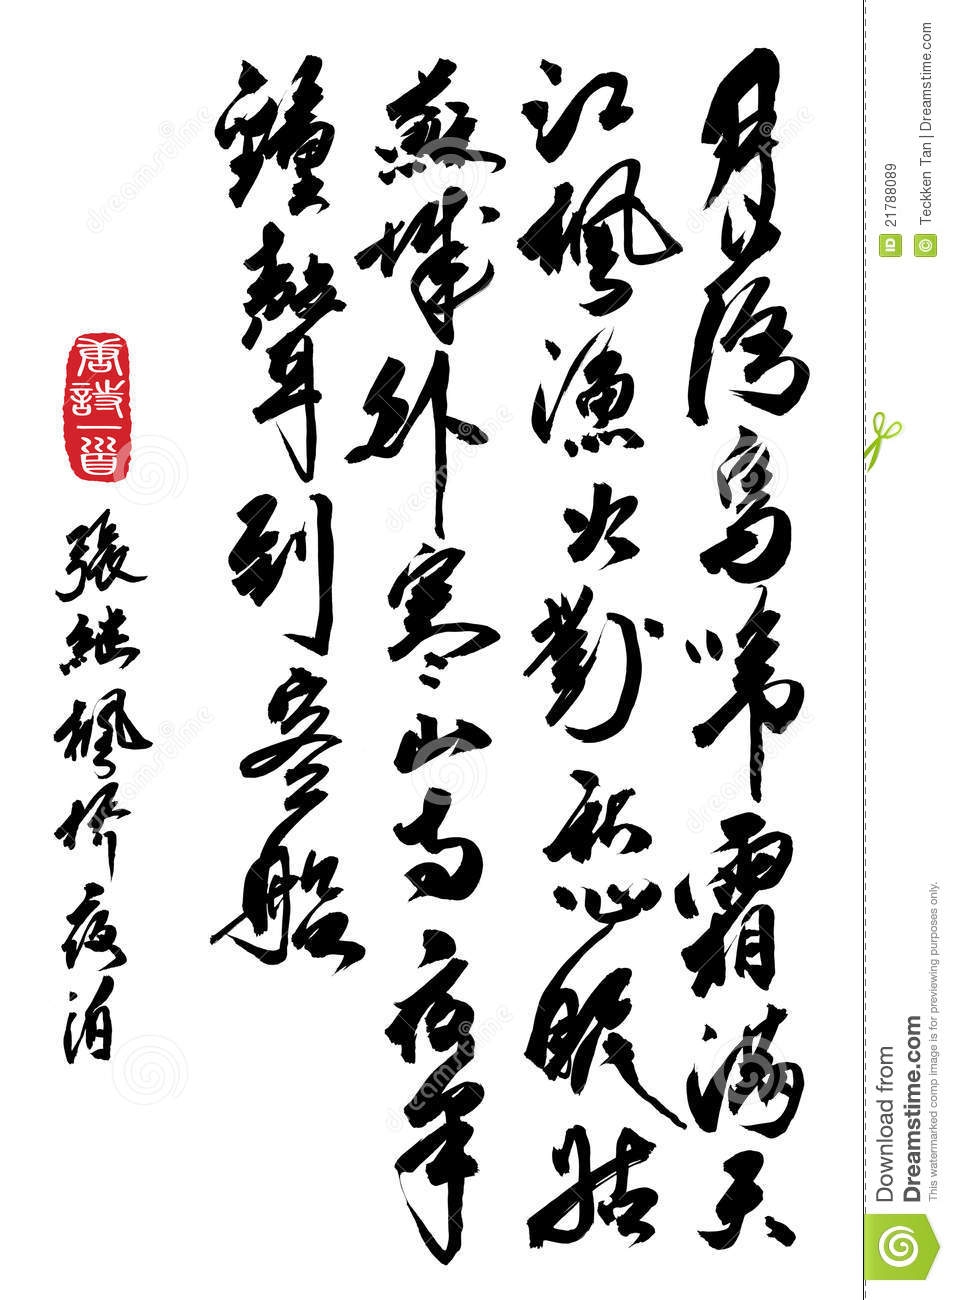 Chinese Calligraphy Old Chinese Poem Stock Illustration